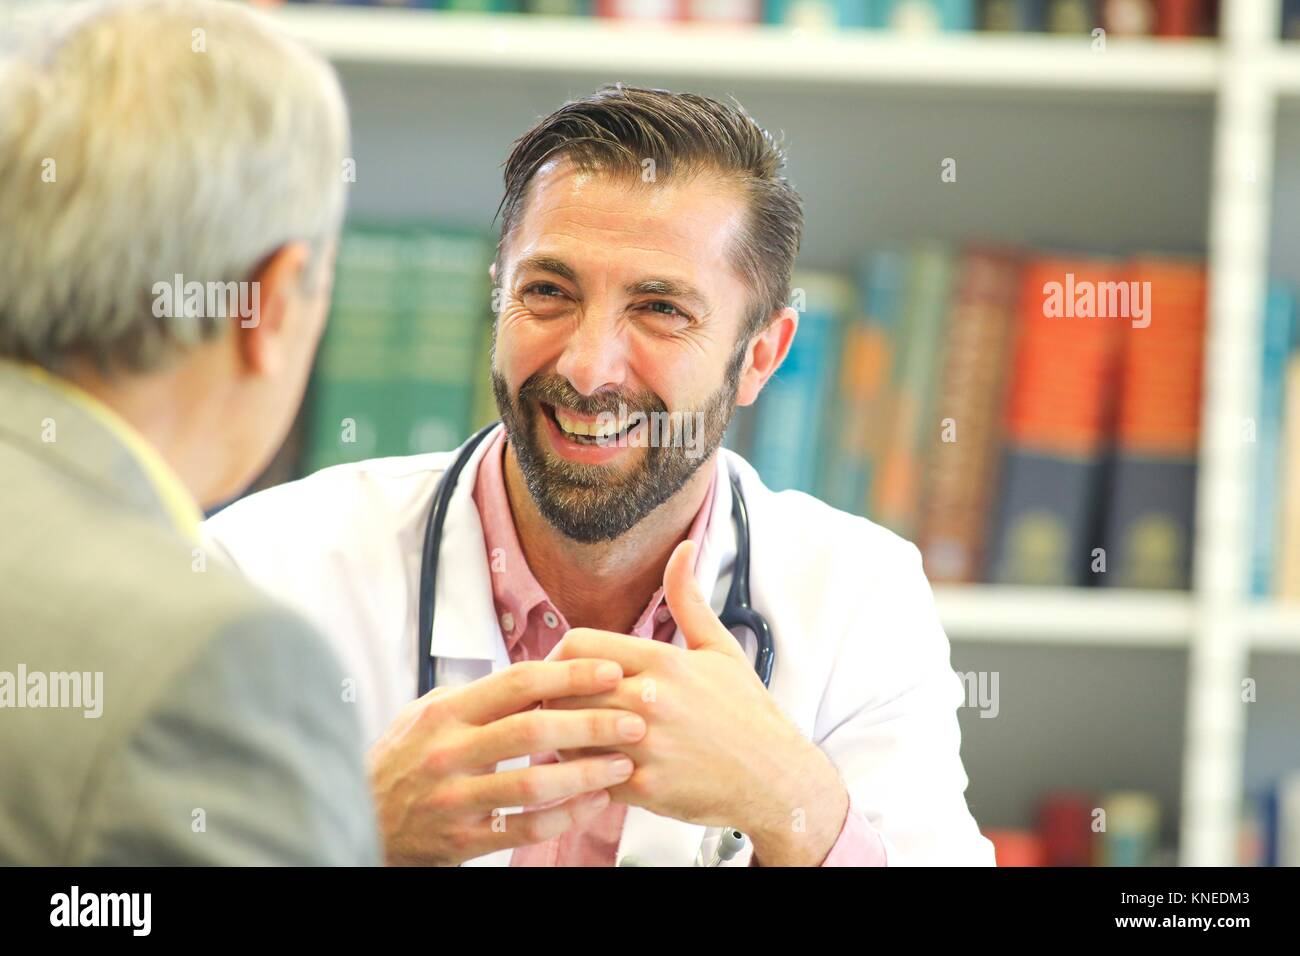 Doctor with patient, Hospital, Donostia, San Sebastian, Gipuzkoa, Basque Country, Spain - Stock Image